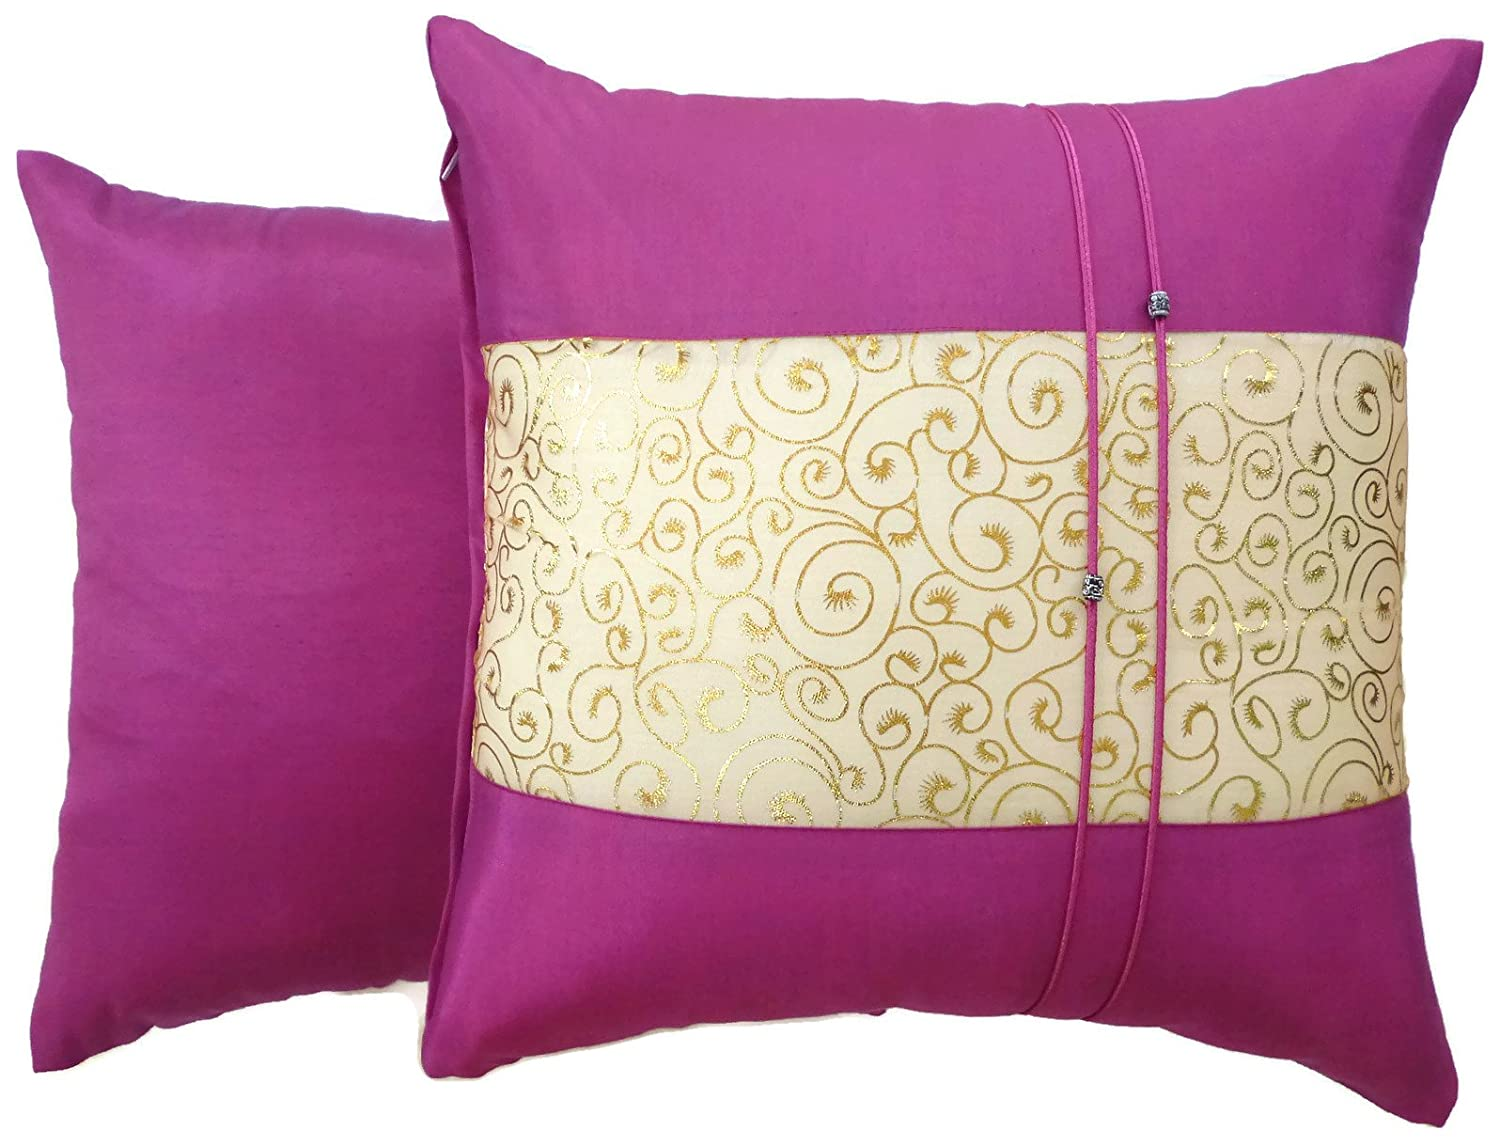 Moose546 Set of Two 16x16 Fuchsia Pink Silk Throw Cushion Cover Pillow Case Gold Print Middle Stripe for Decorative Living Room Bed room Sofa Car